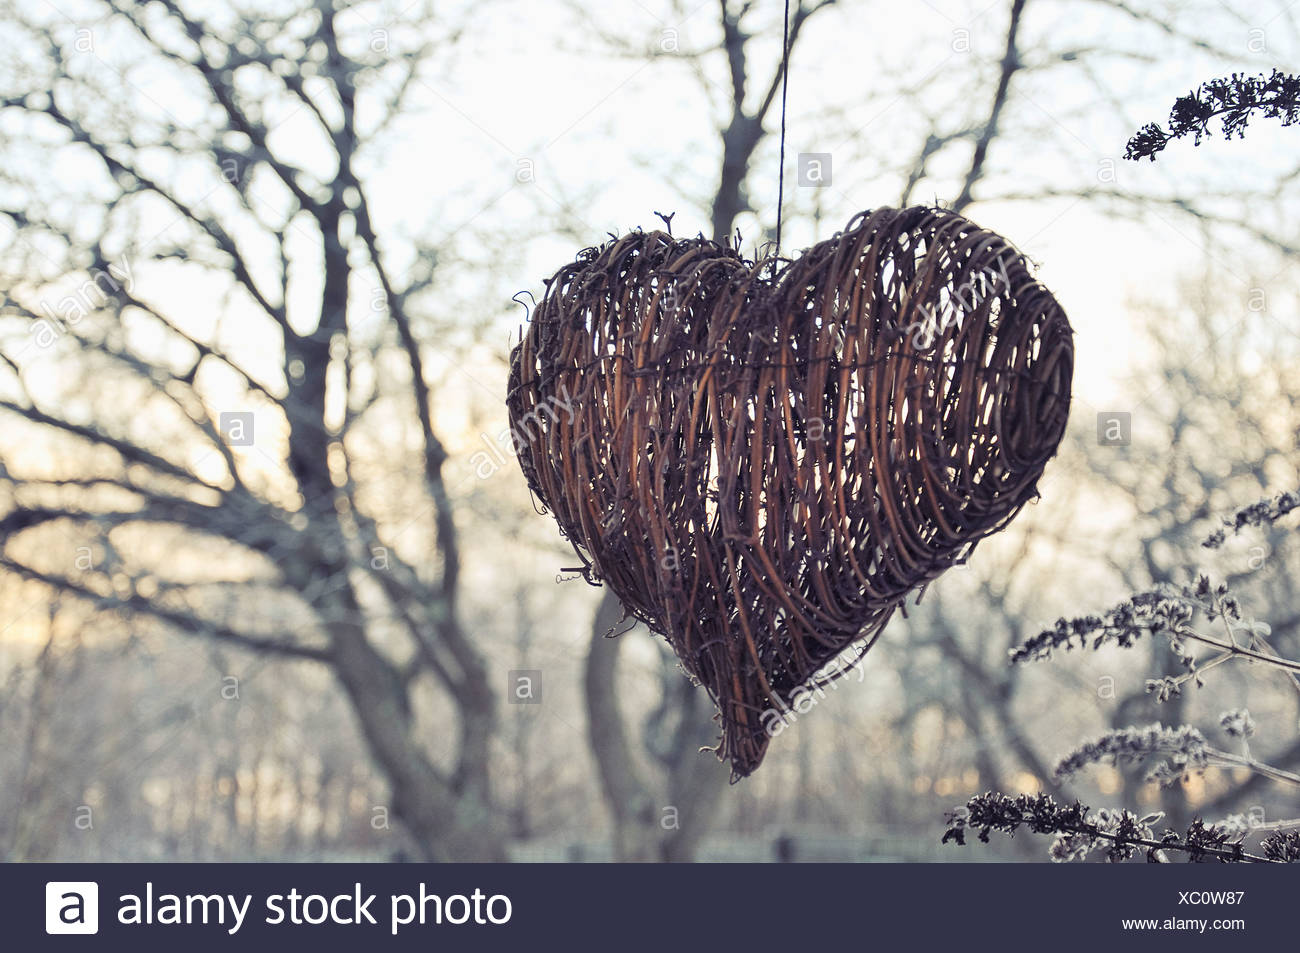 Heart shape Christmas decoration outdoors - Stock Image